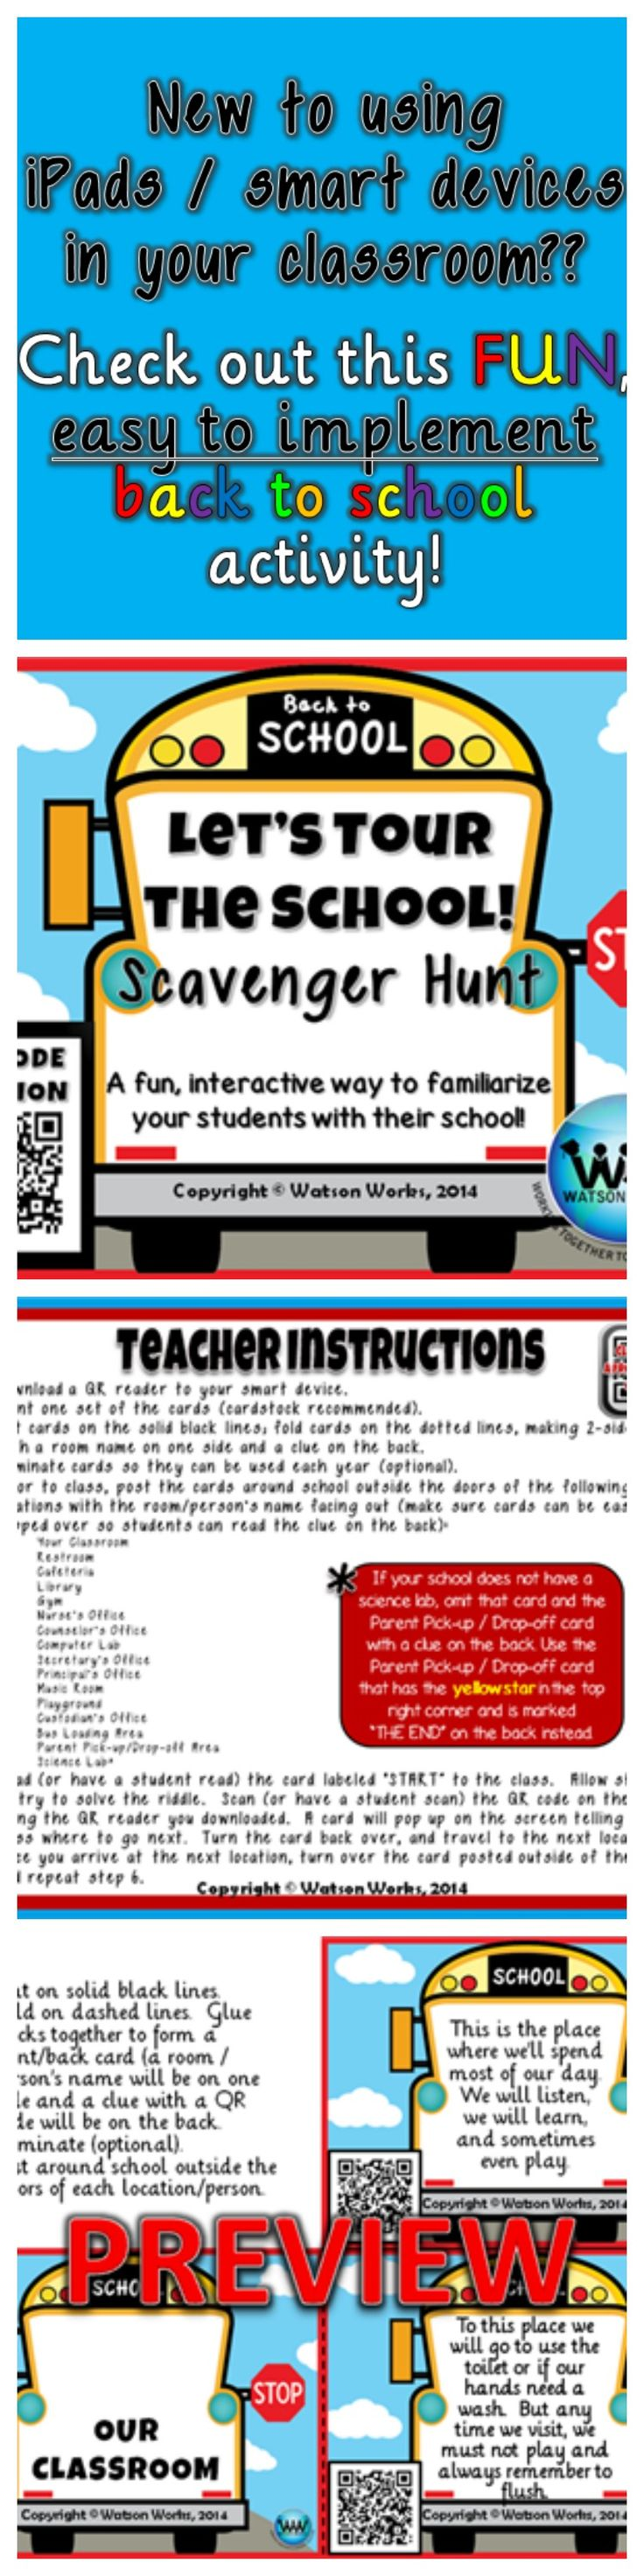 $3.  If your school has purchased iPads/smart devices and you are a little leery of using them, QR code activities are one of the easiest ways to implement these devices in your classroom.  In this back to school scavenger hunt, you will familiarize your students with important people and places in their school in a fun, interactive way. (reg. $3) July-Aug.